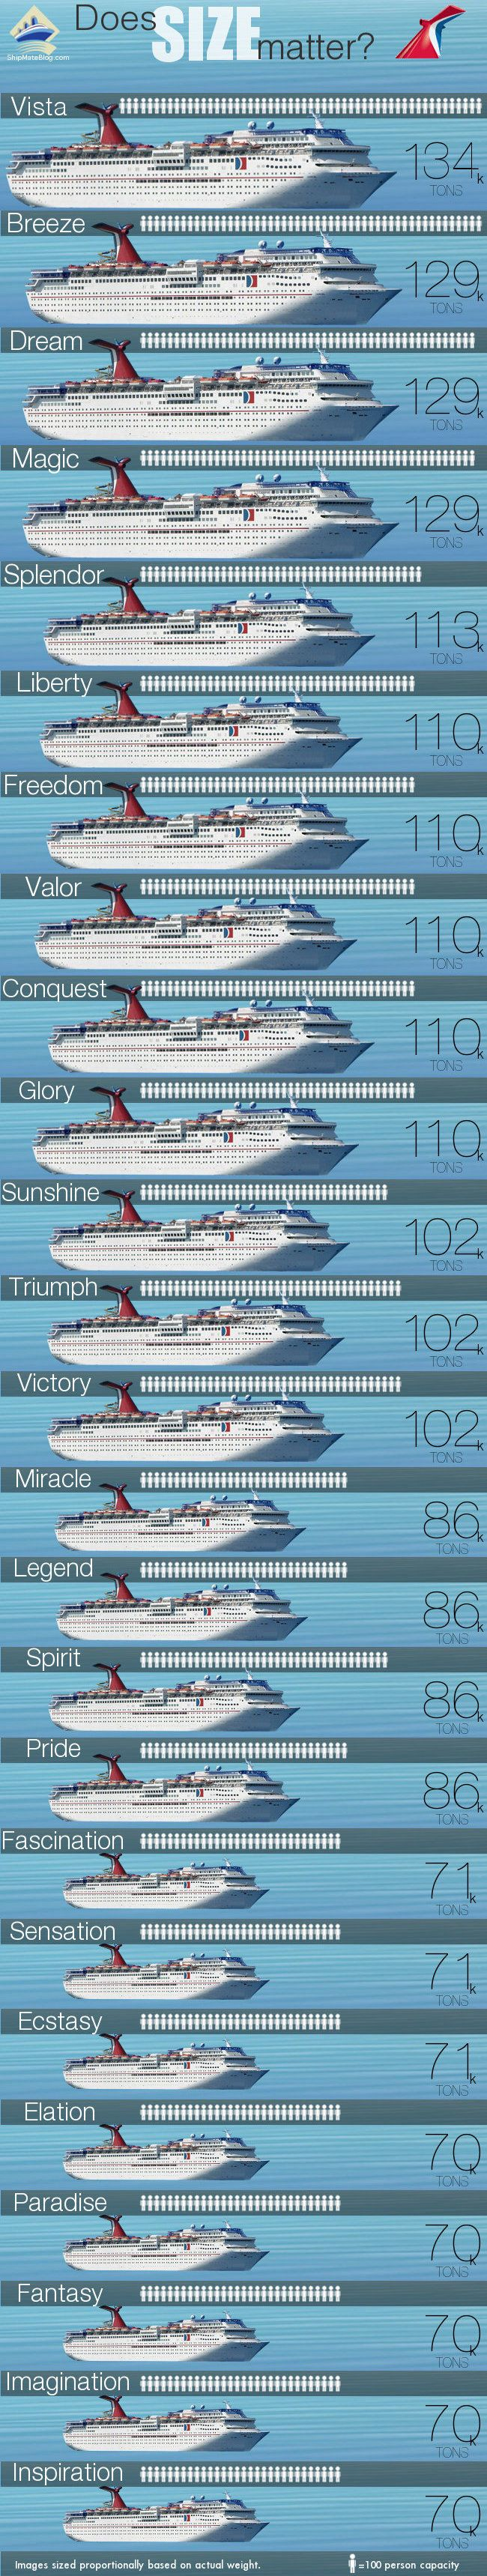 Carnival Ships By Size.. Vista is scheduled to finished in 2016! She is going to be beautiful!! She will debut in Italy and sail 18 voyages in Europe before heading home to America.. Cruise Planners- Franchise owner in Colorado John Carmical. Associates in Florida-Jannice and California-Erica Contact any of us at (719) 696-3966, toll free 855-832-2339 or Jannice @ (727) 399-7414  www.passage2paradise.com